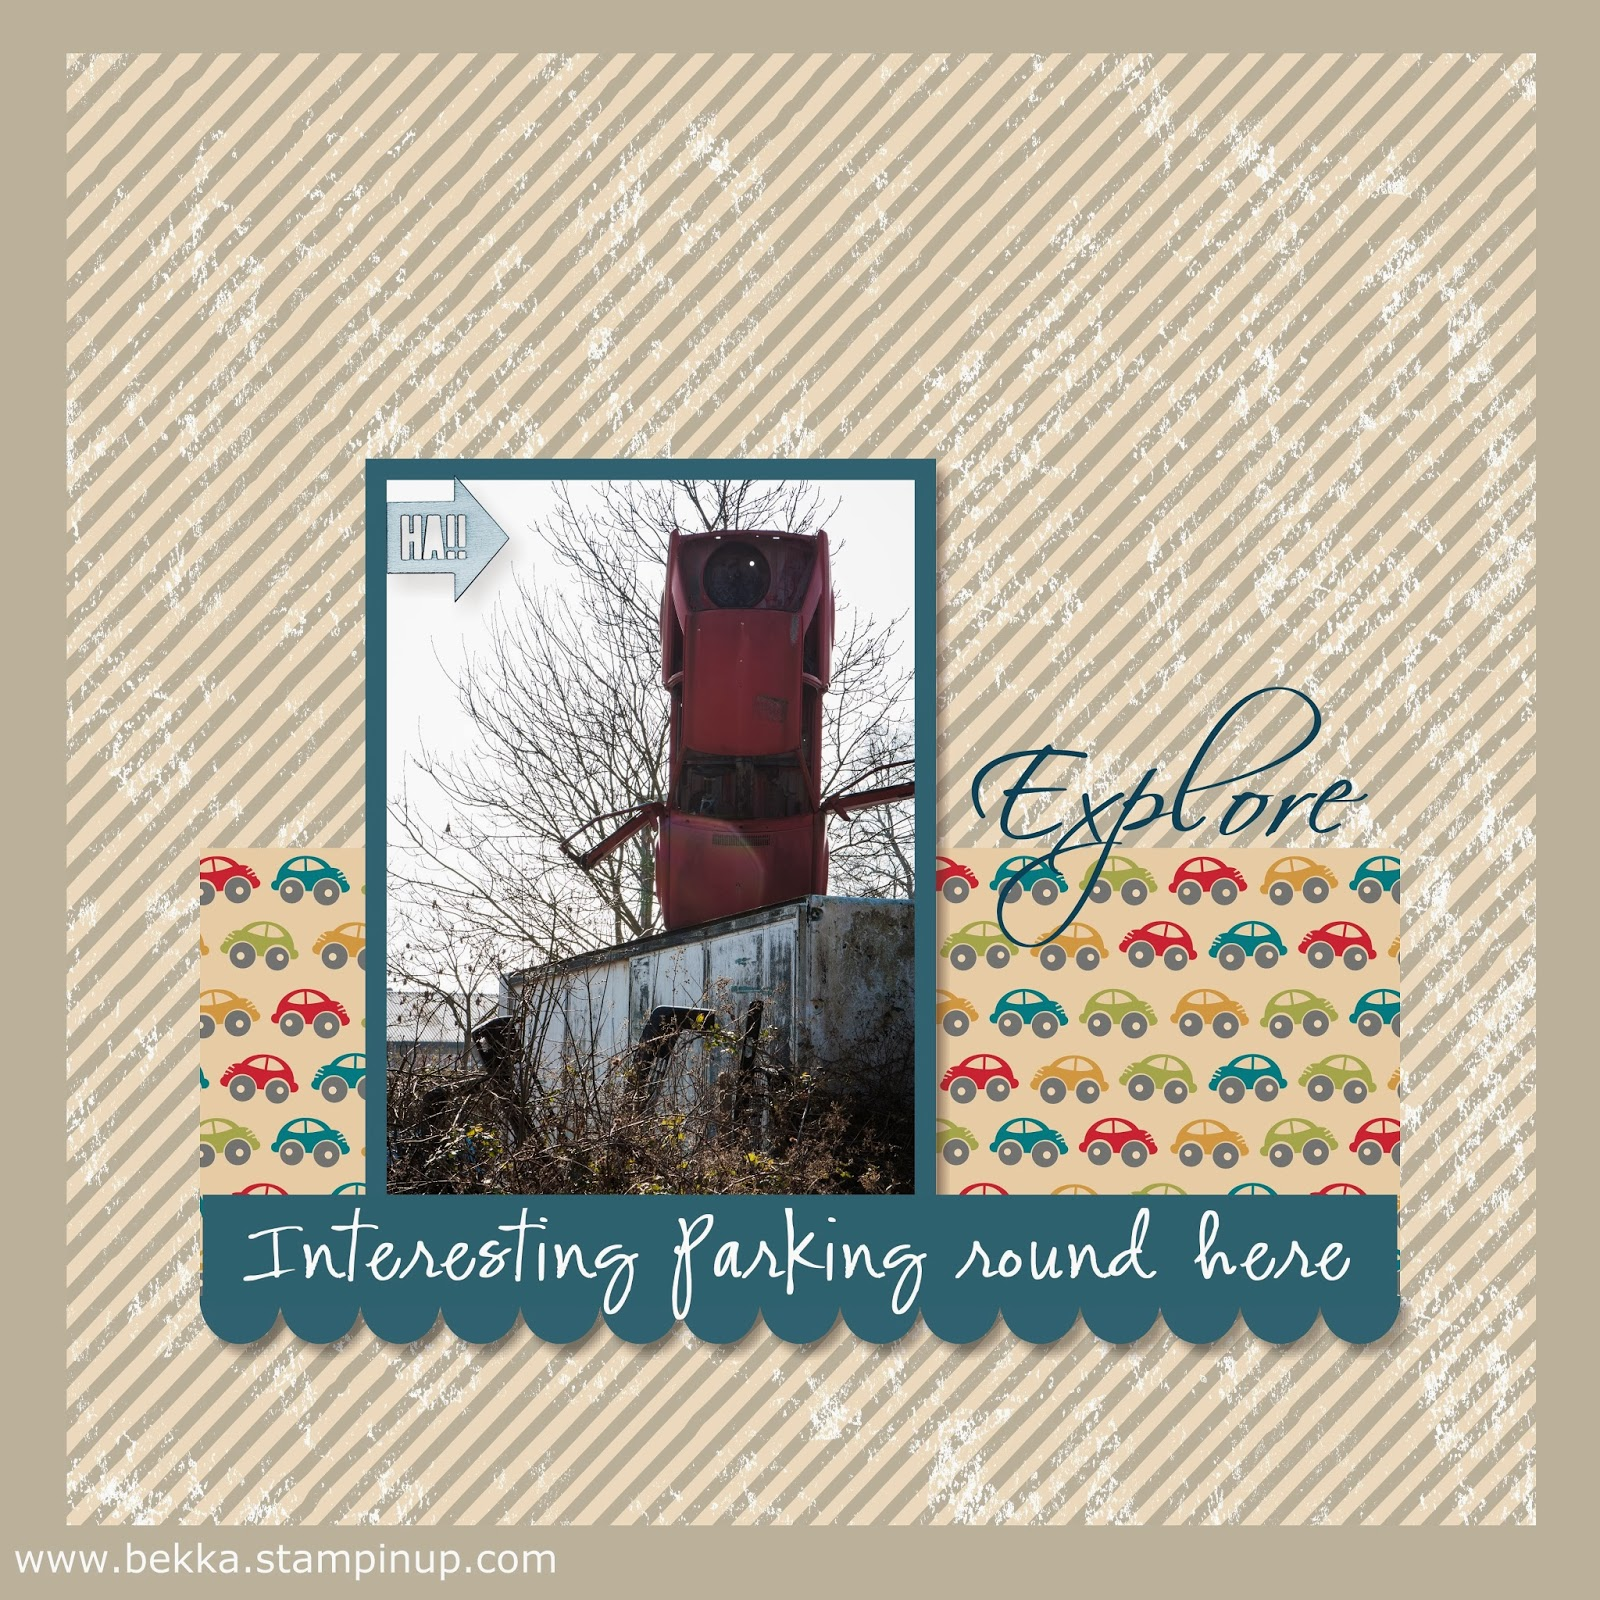 Exploring my surrounds - Interesting Parking!  Digital Scrapbook Page by UK Based Stampin' Up! Demonstrator Bekka Prideaux